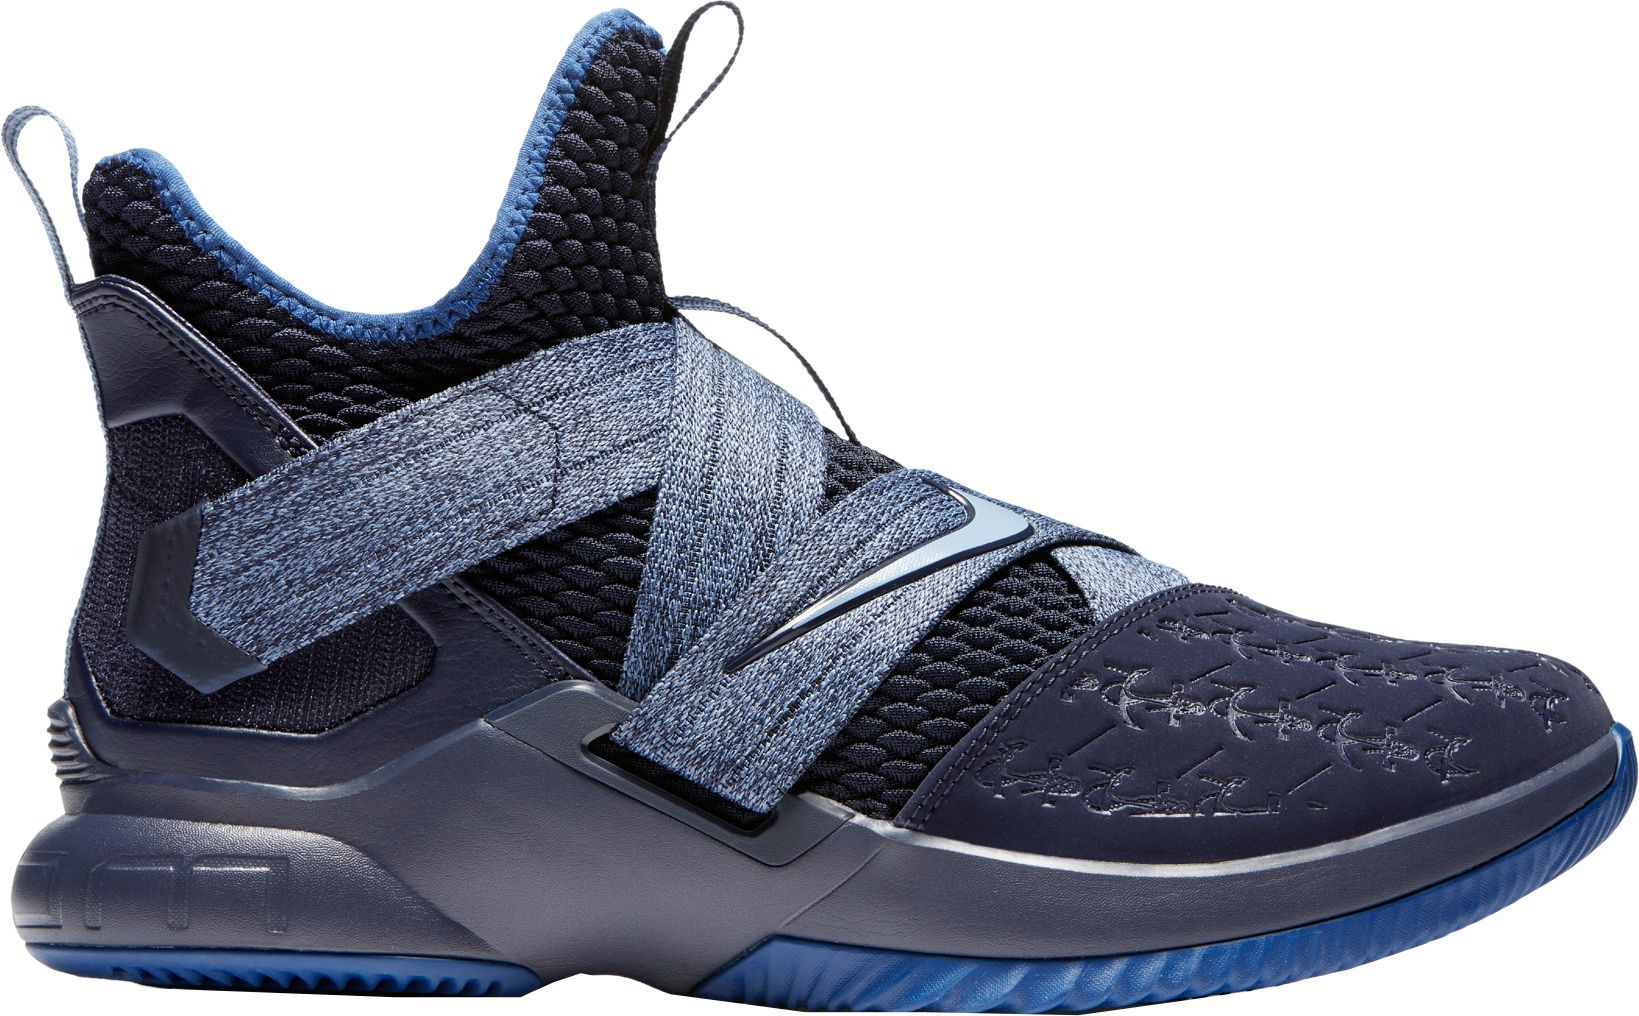 finest selection fb6ce 3bf0c Nike Zoom LeBron Soldier XII Basketball Shoes | Products ...